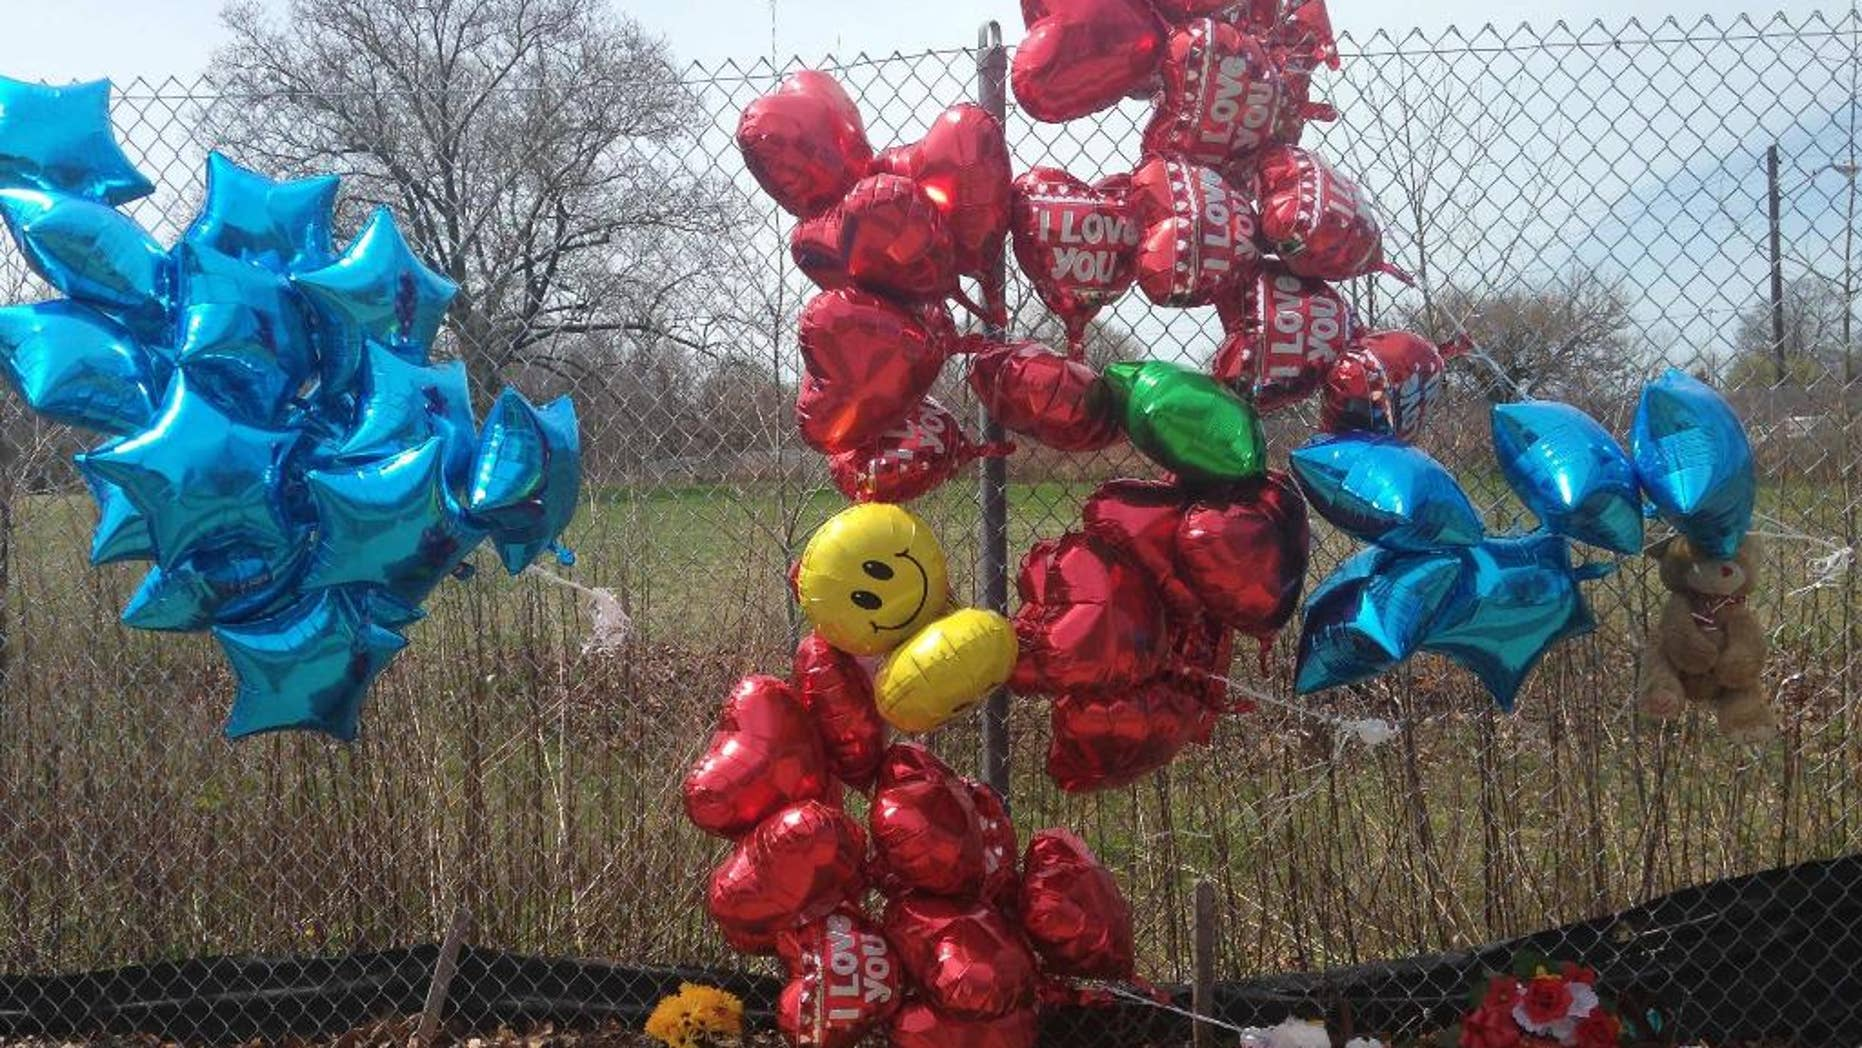 A makeshift memorial sits along a fence Monday, April 17, 2017, near where Robert Godwin Sr., was killed in Cleveland. Police said Steve Stephens killed Godwin on Sunday and posted the video on Facebook. (AP Photo/Mike Householder)